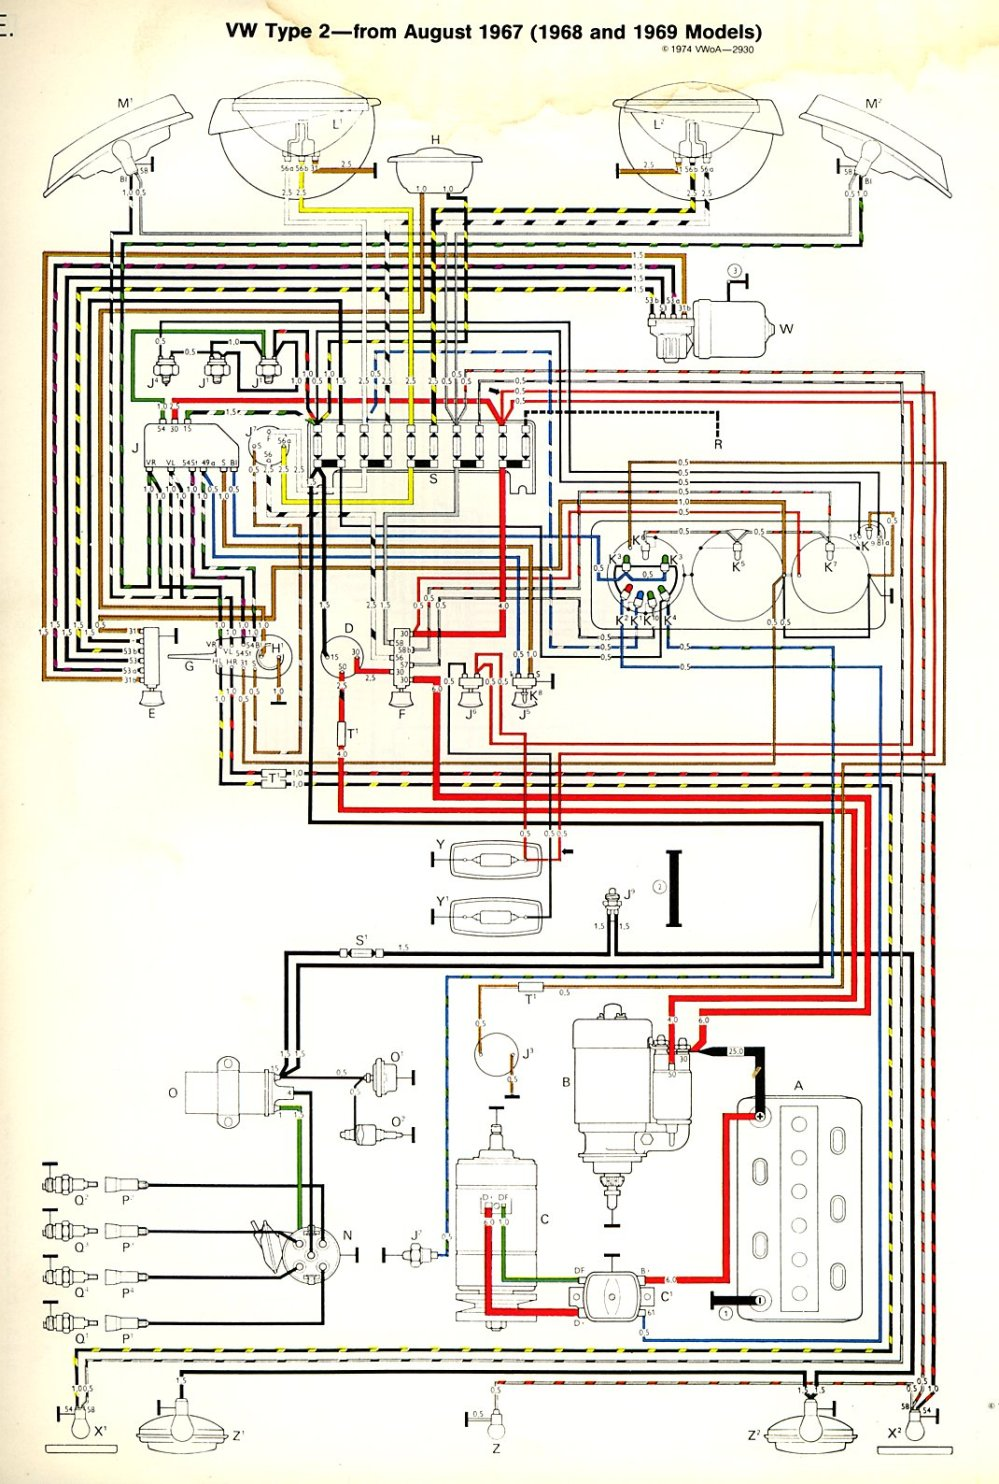 medium resolution of 1968 69 bus wiring diagram thegoldenbug com 1998 mazda b2500 fuse box diagram vw bus fuse box diagram